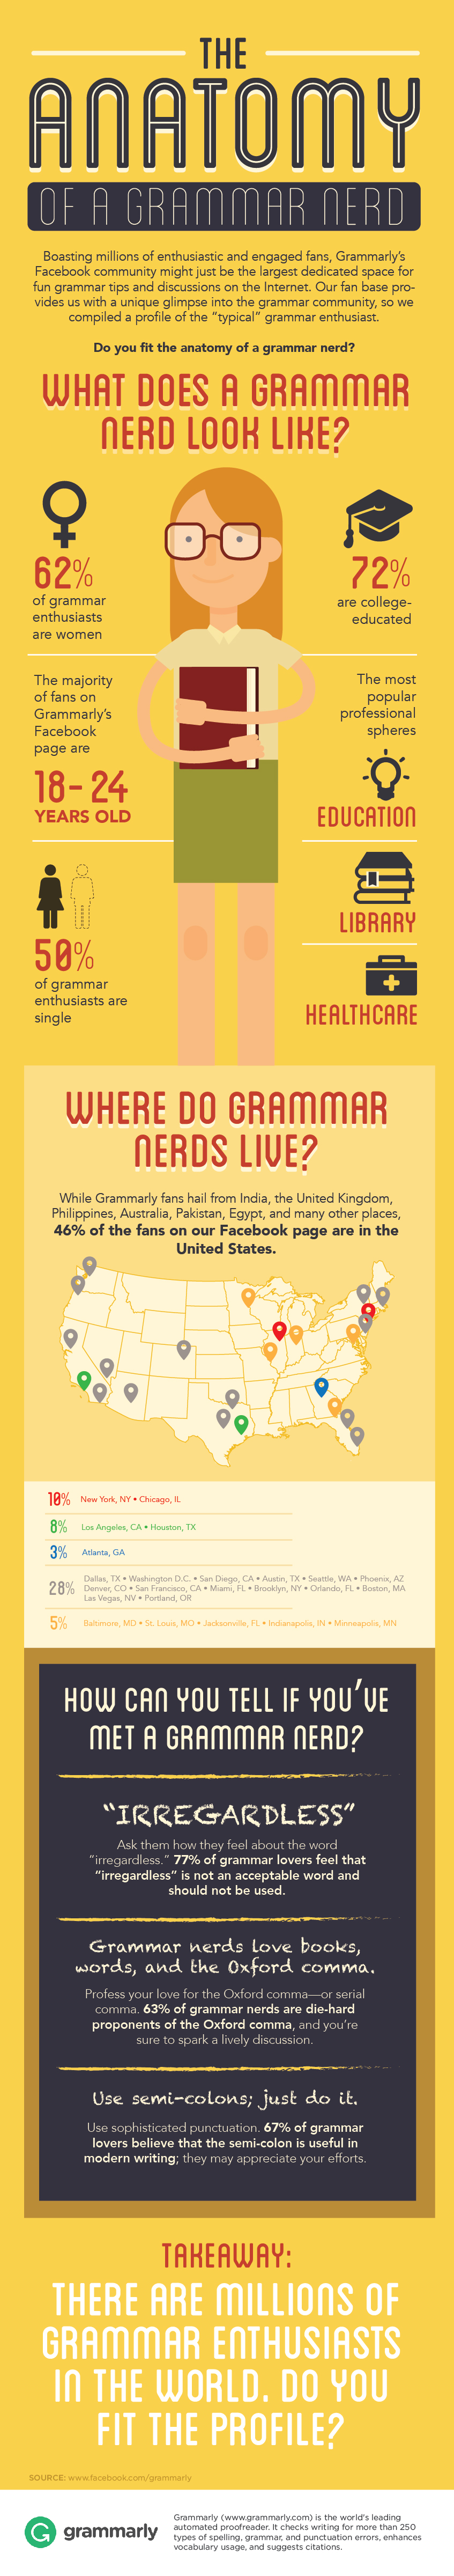 Are You a Grammar Nerd? (Infographic)